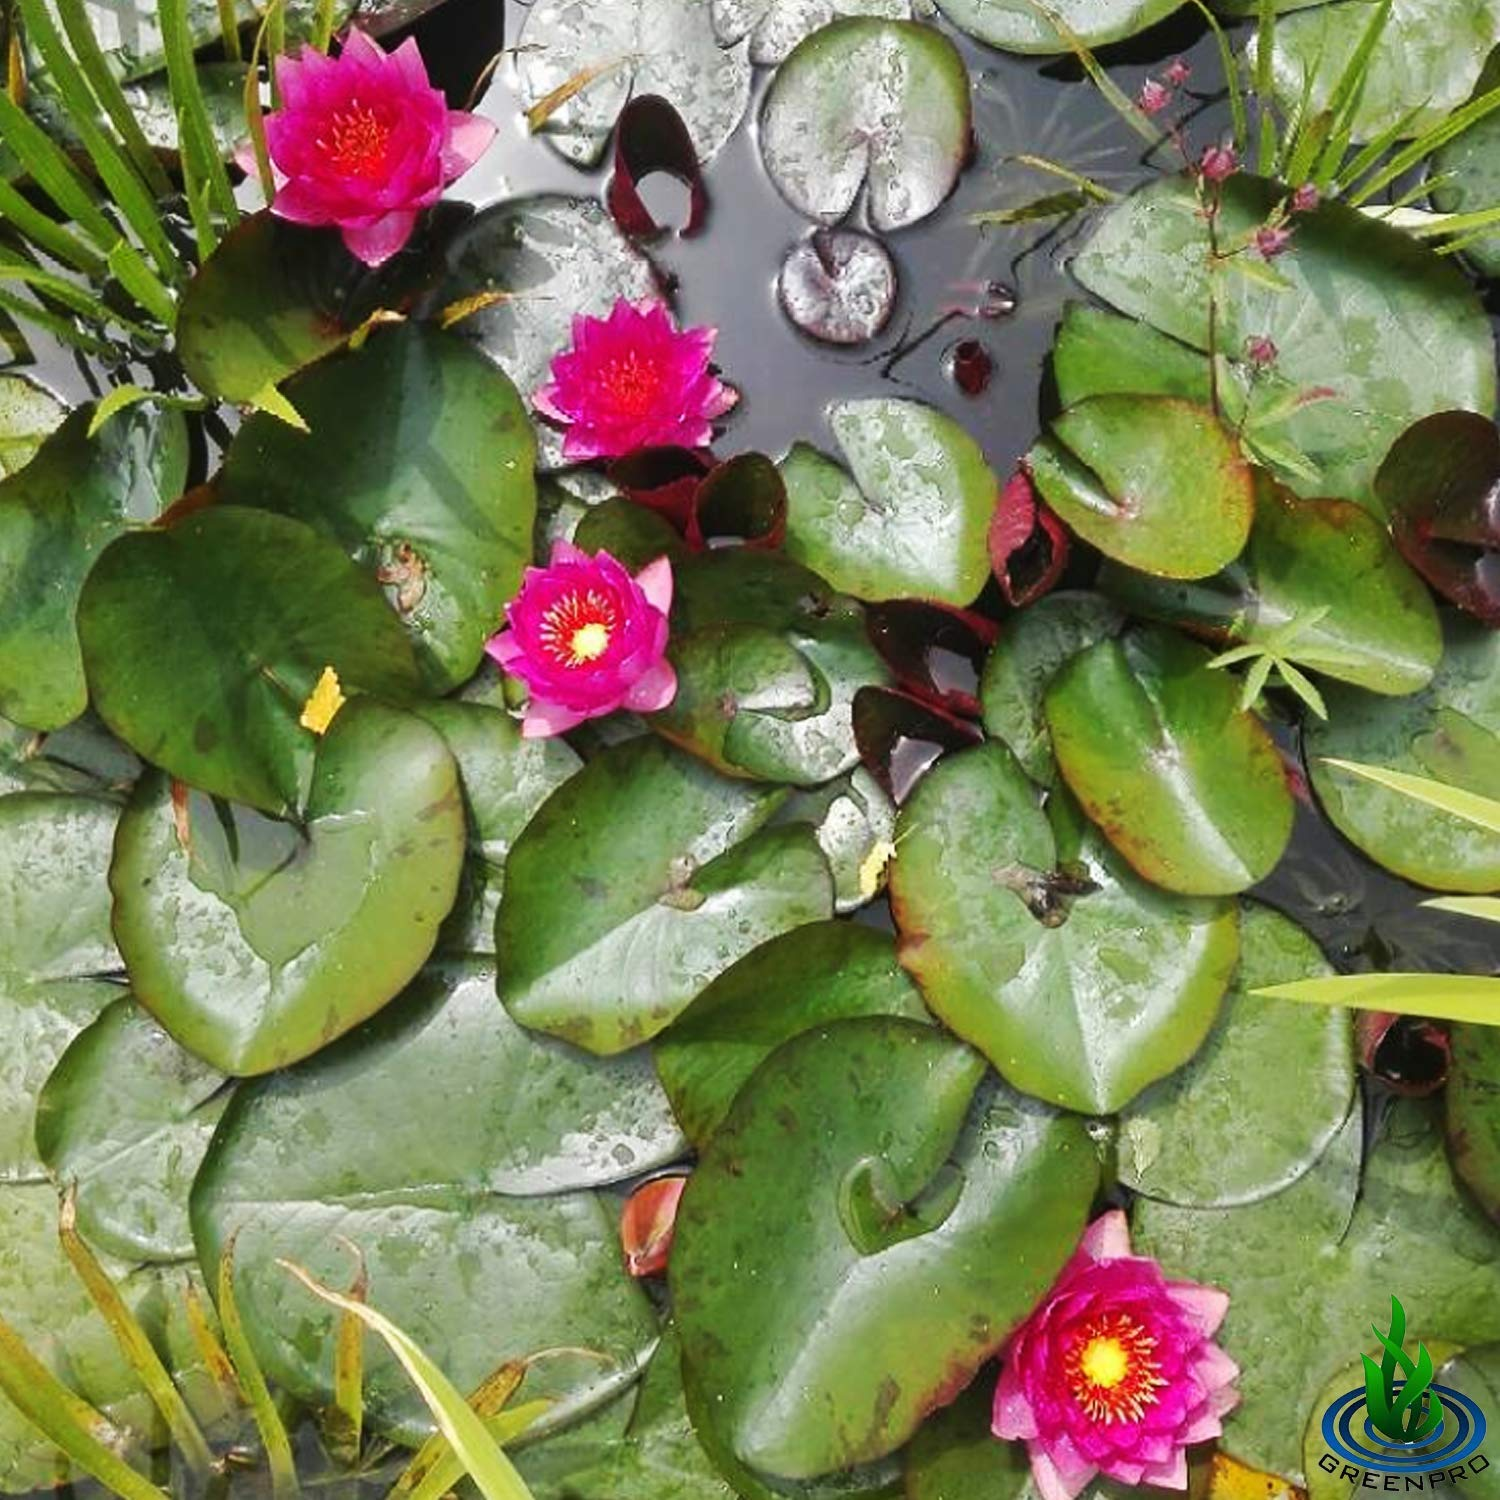 Live Water Lily Tuber Nymphaea James Brydon Pink Hardy Aquatic Plants for Aquarium Freshwater Fish Pond Garden by Greenpro (Image #5)